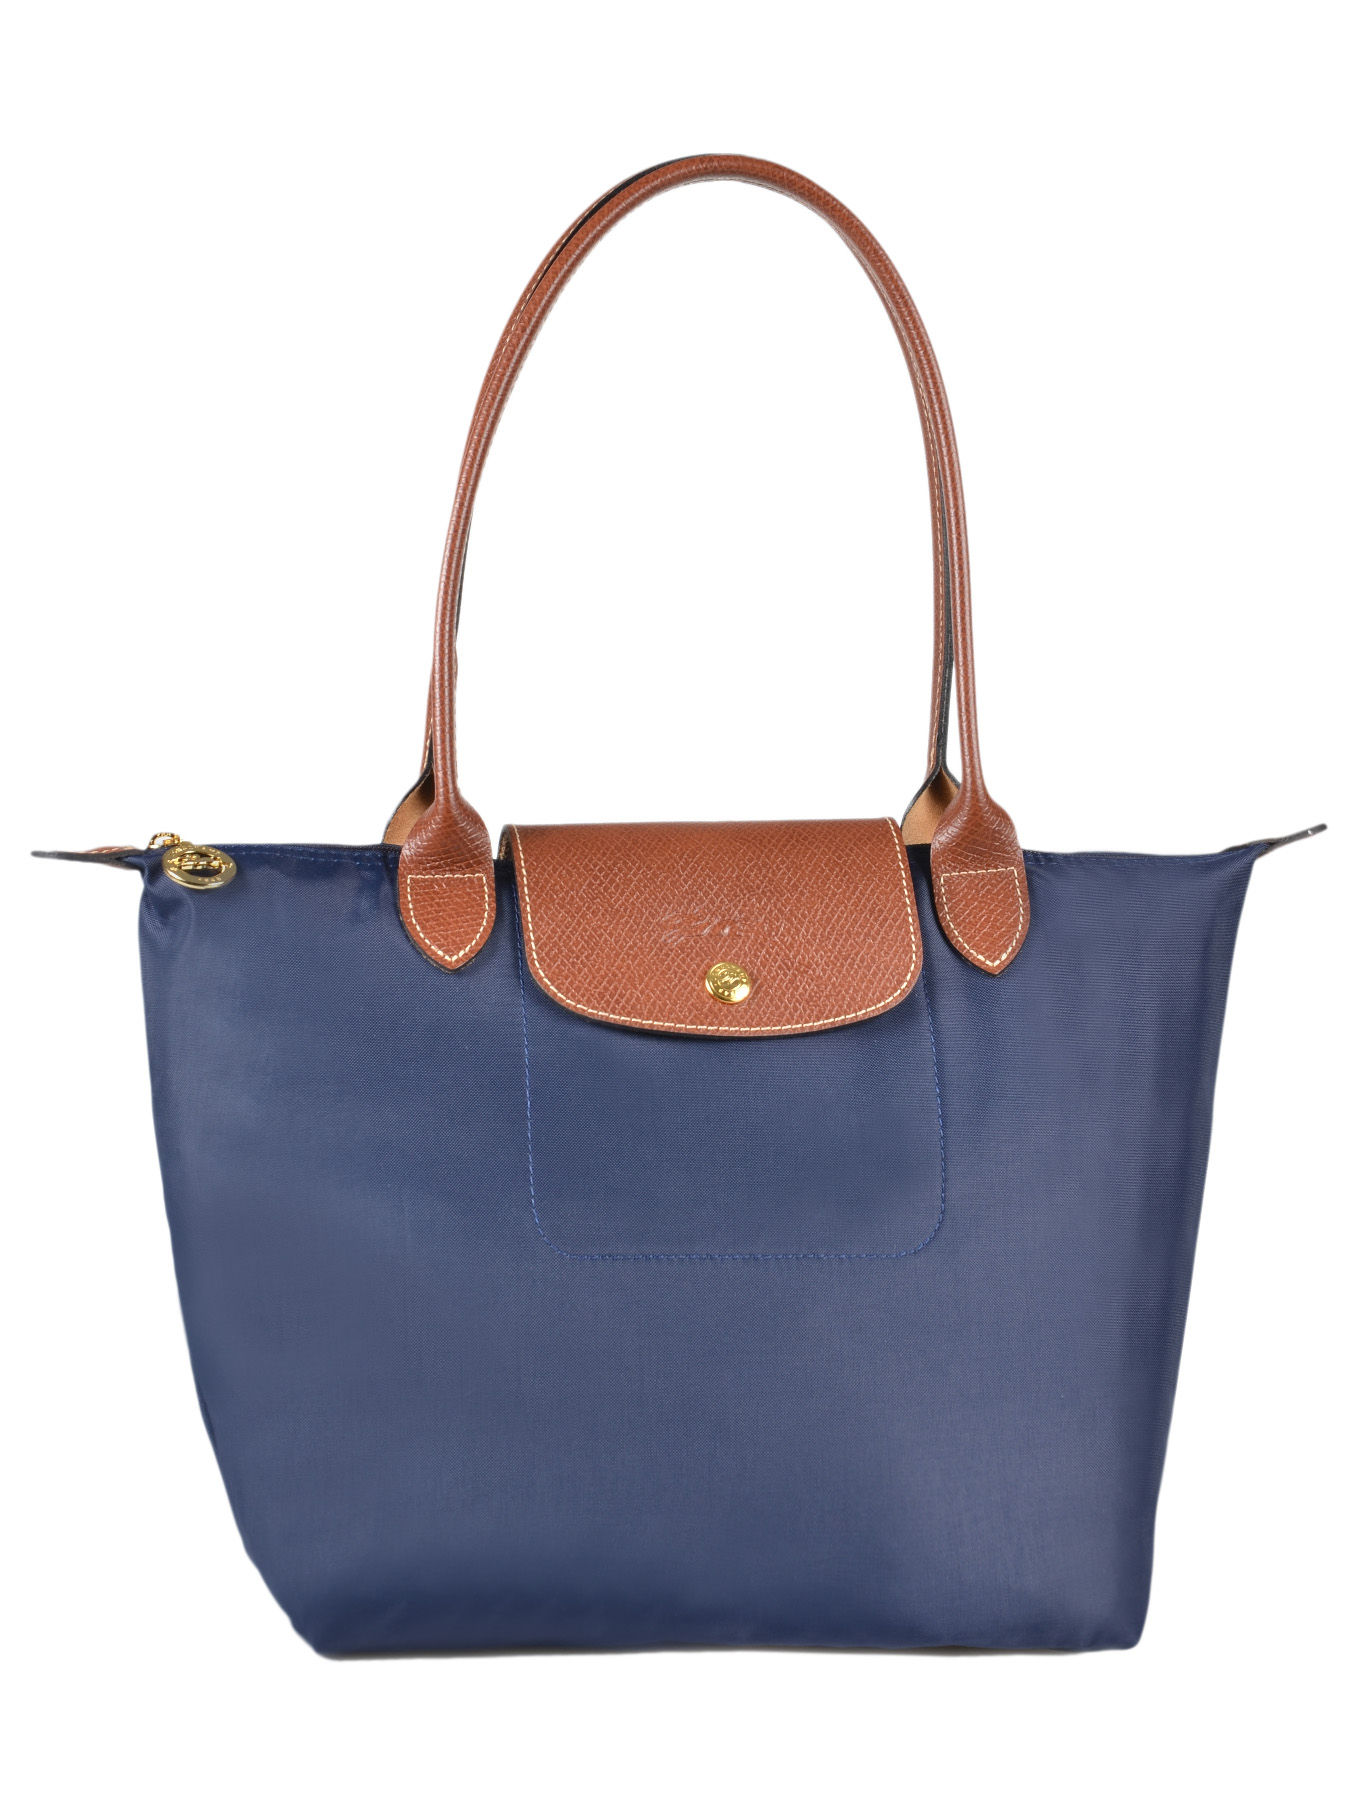 Sac shopping M Le pliage LONGCHAMP